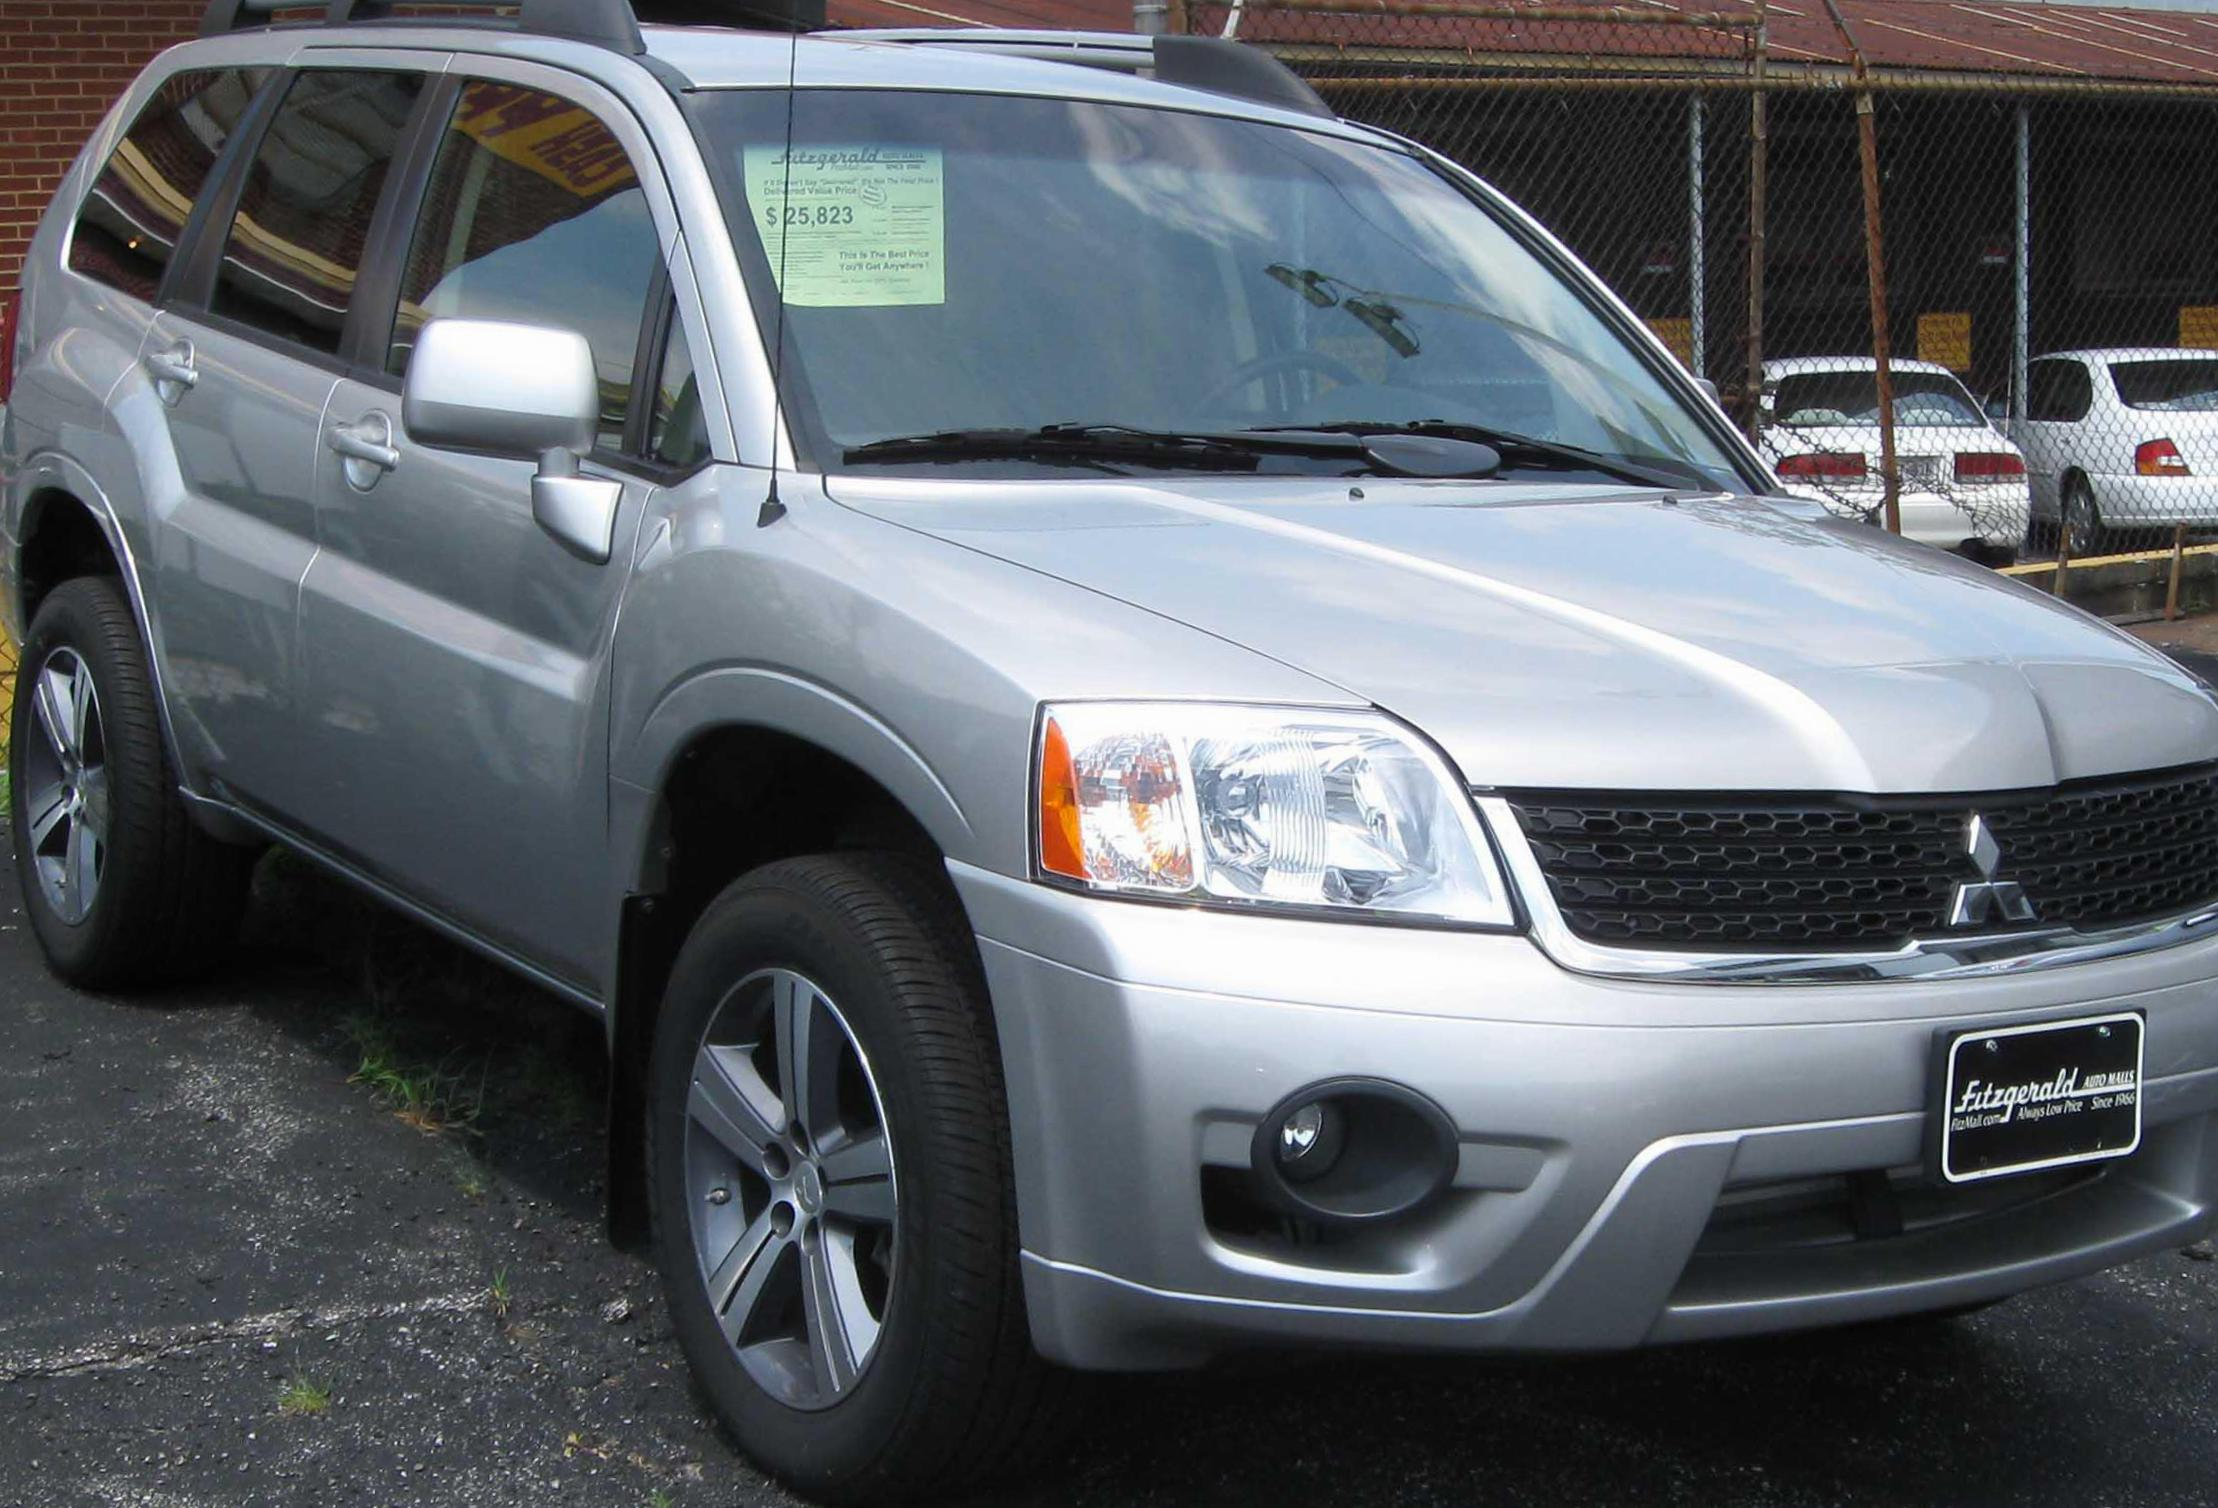 Mitsubishi Endeavor approved 2009